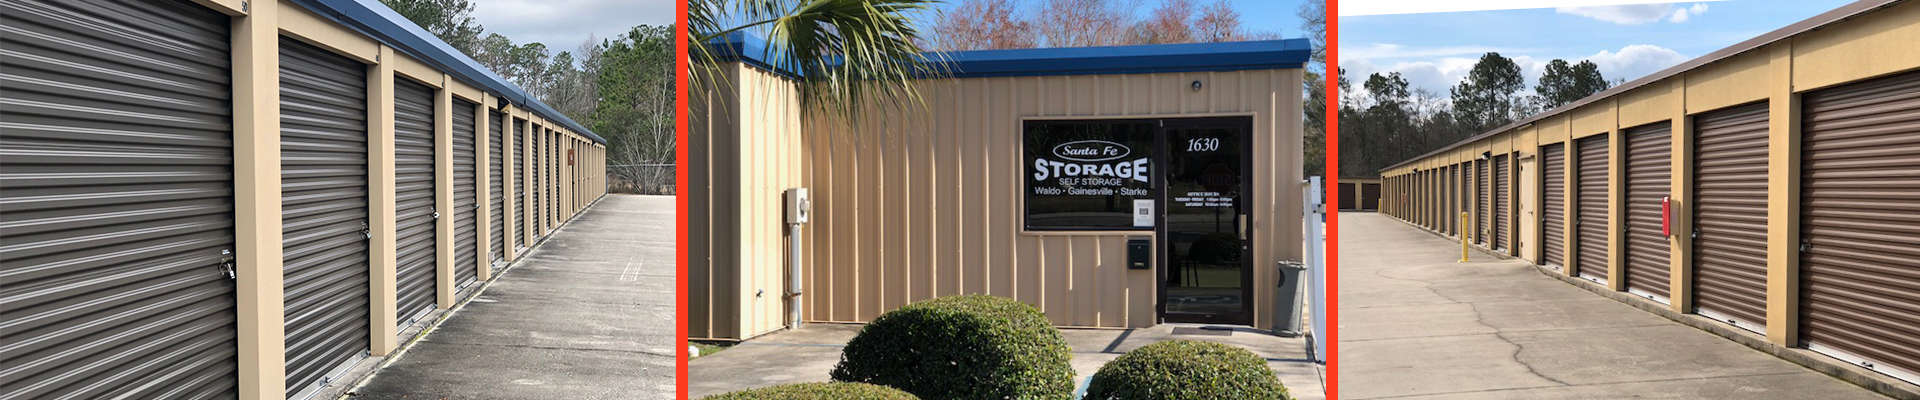 Genial Santa Fe Self Storage   Business And Personal Storage Solutions